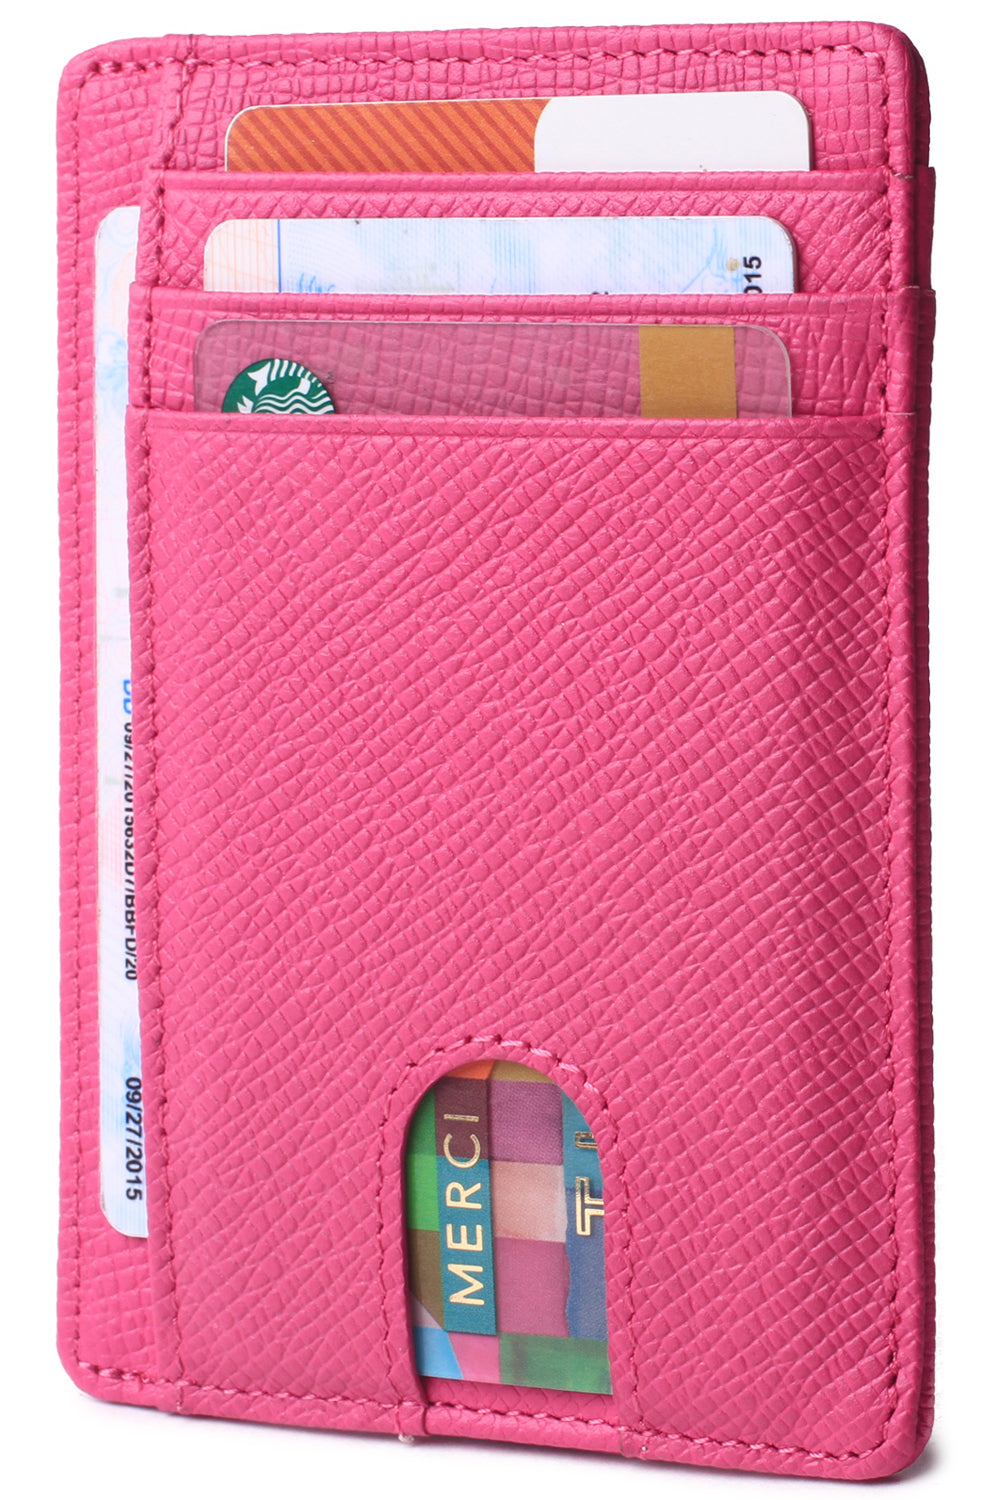 Slim Minimalist Front Pocket RFID Blocking Leather Wallets for Men & Women Pink - Borgasets